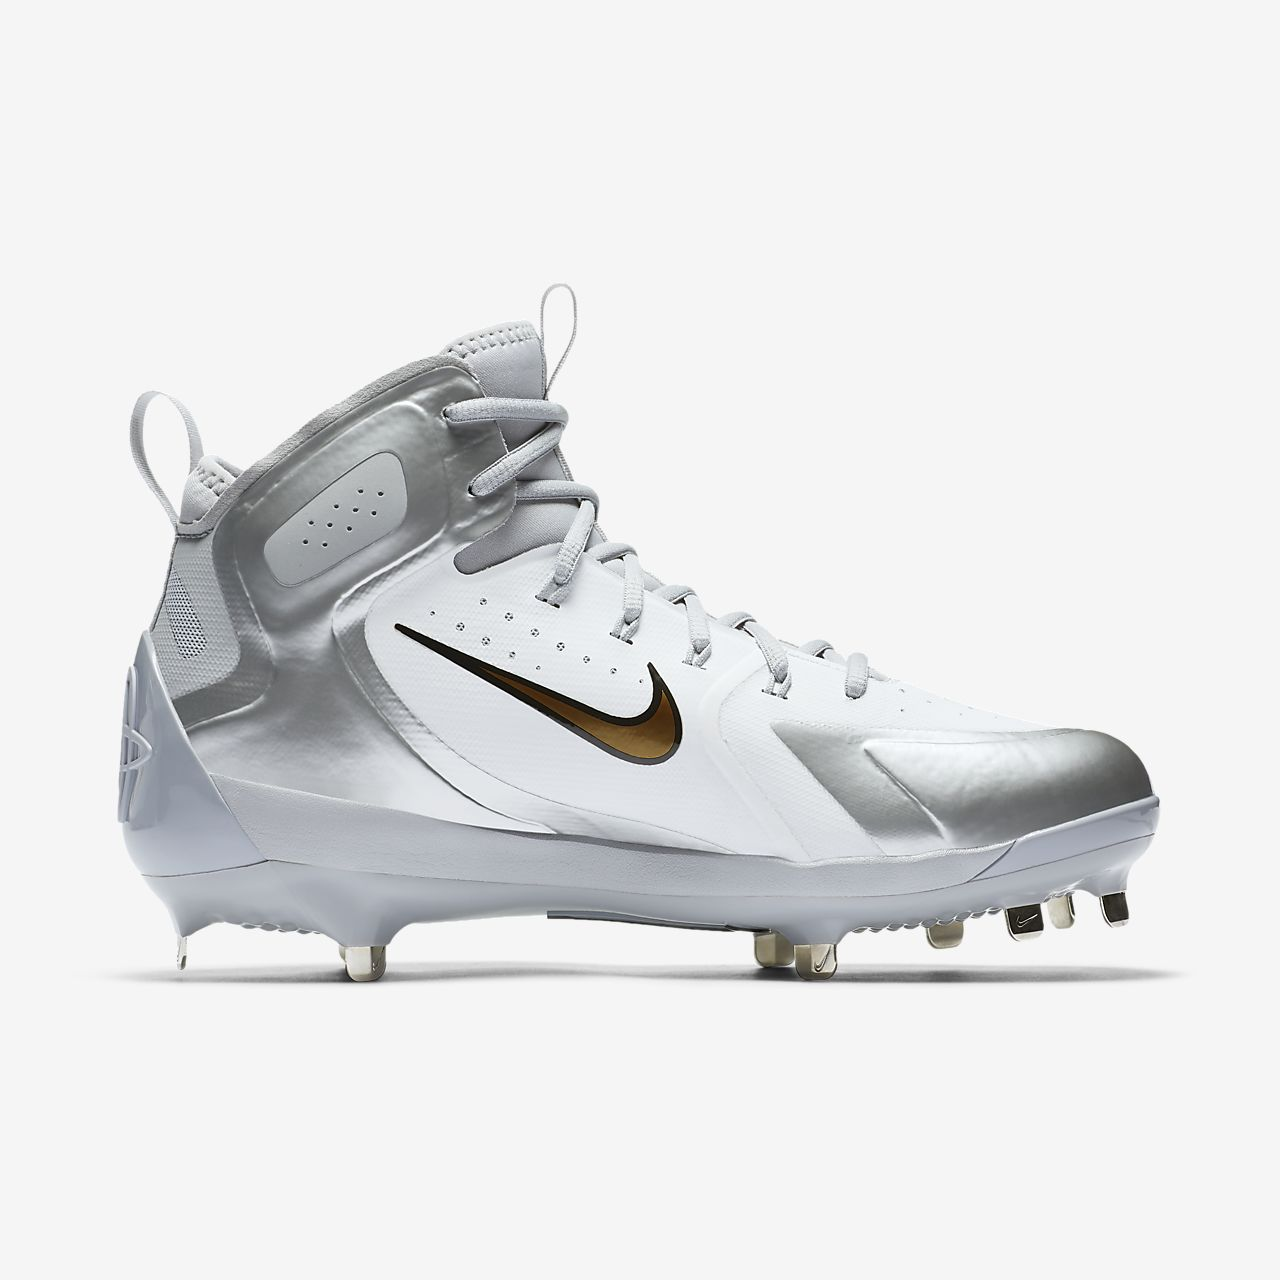 white and gold baseball cleats nike gym shoes womens